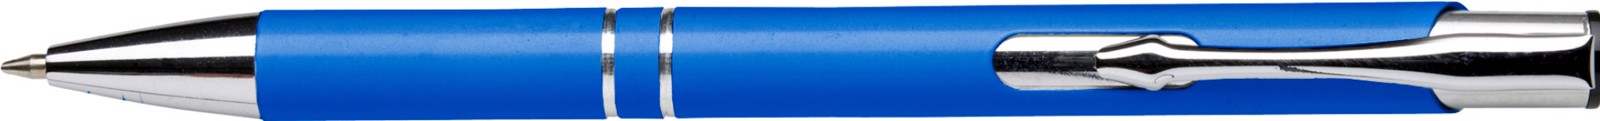 Aluminium ballpen - Light Blue